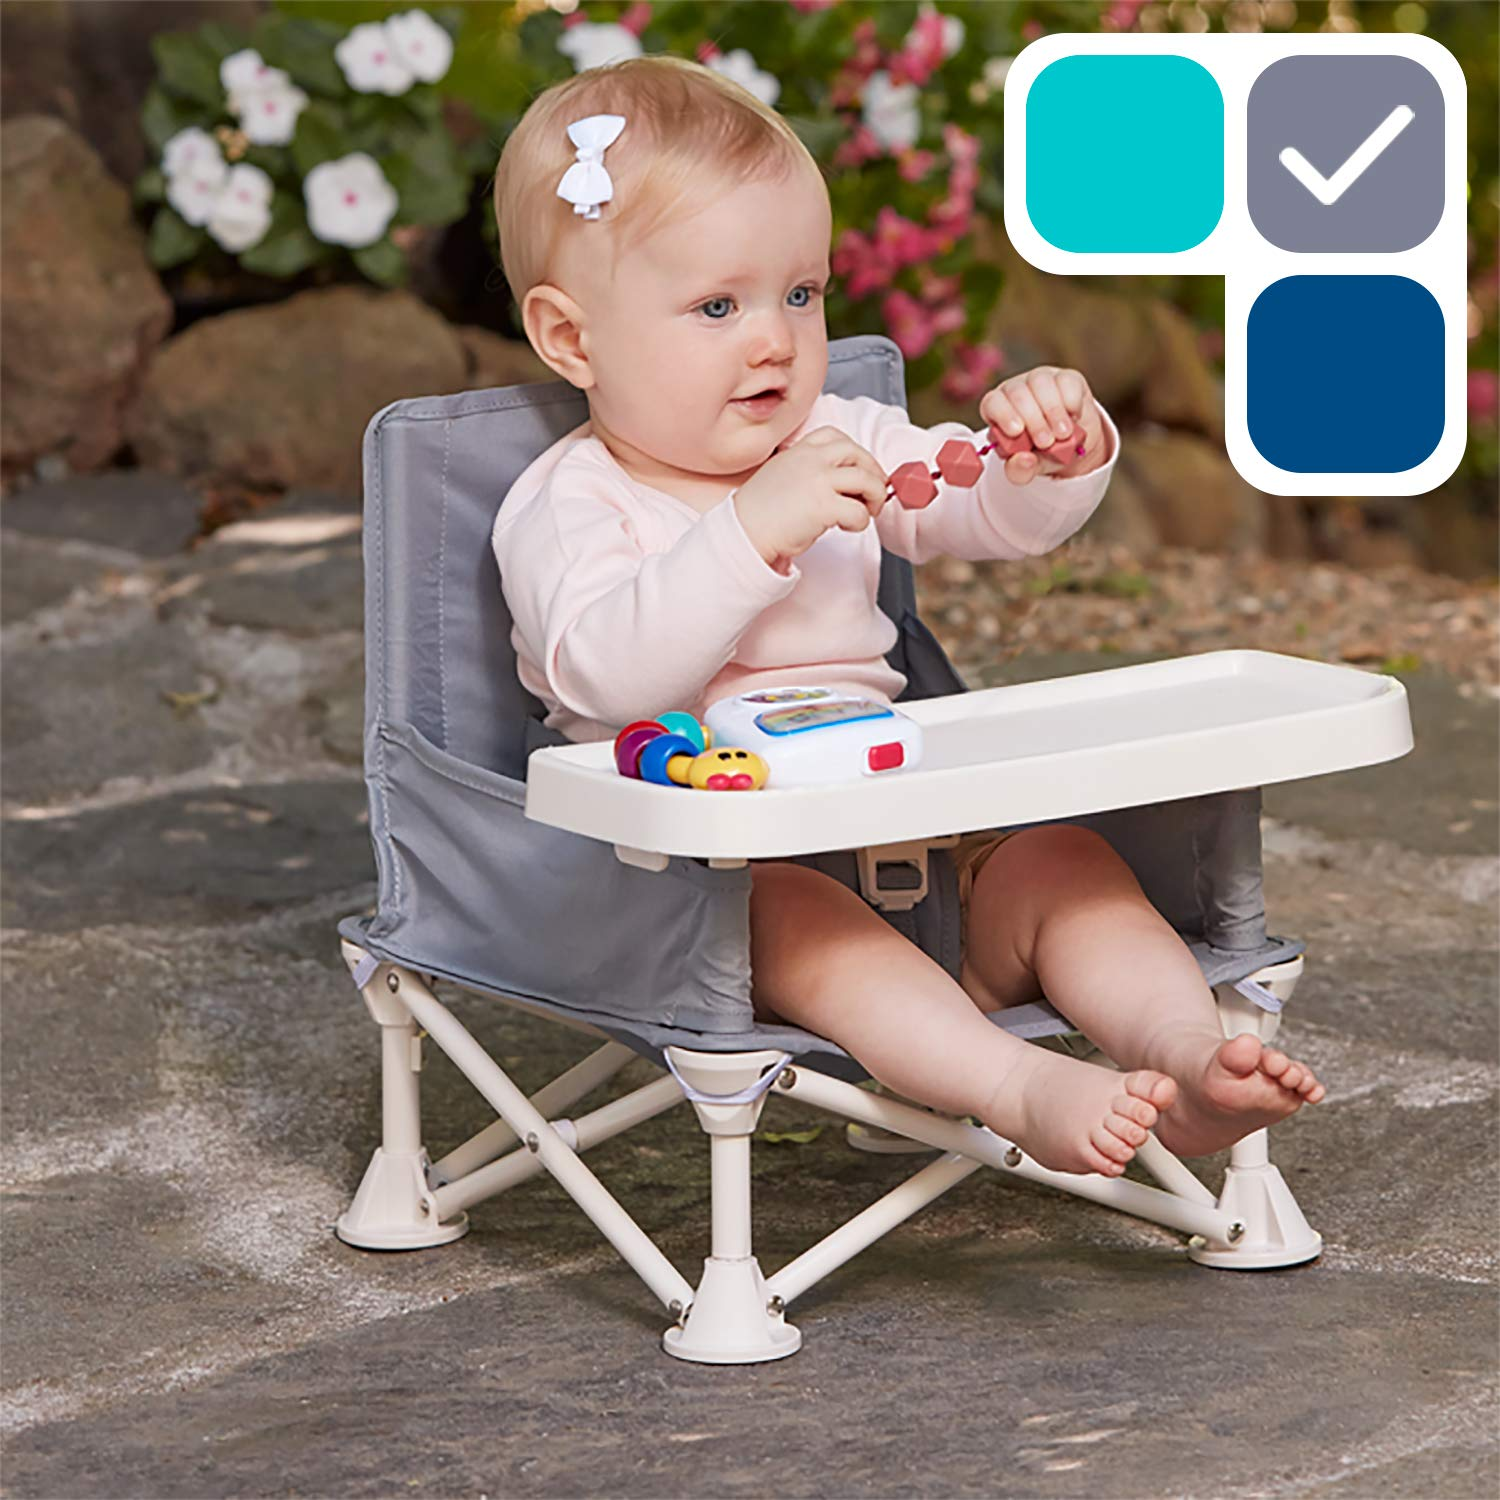 Top 10 Best Baby Booster Seat For Eating (2020 Reviews & Buying Guide) 4